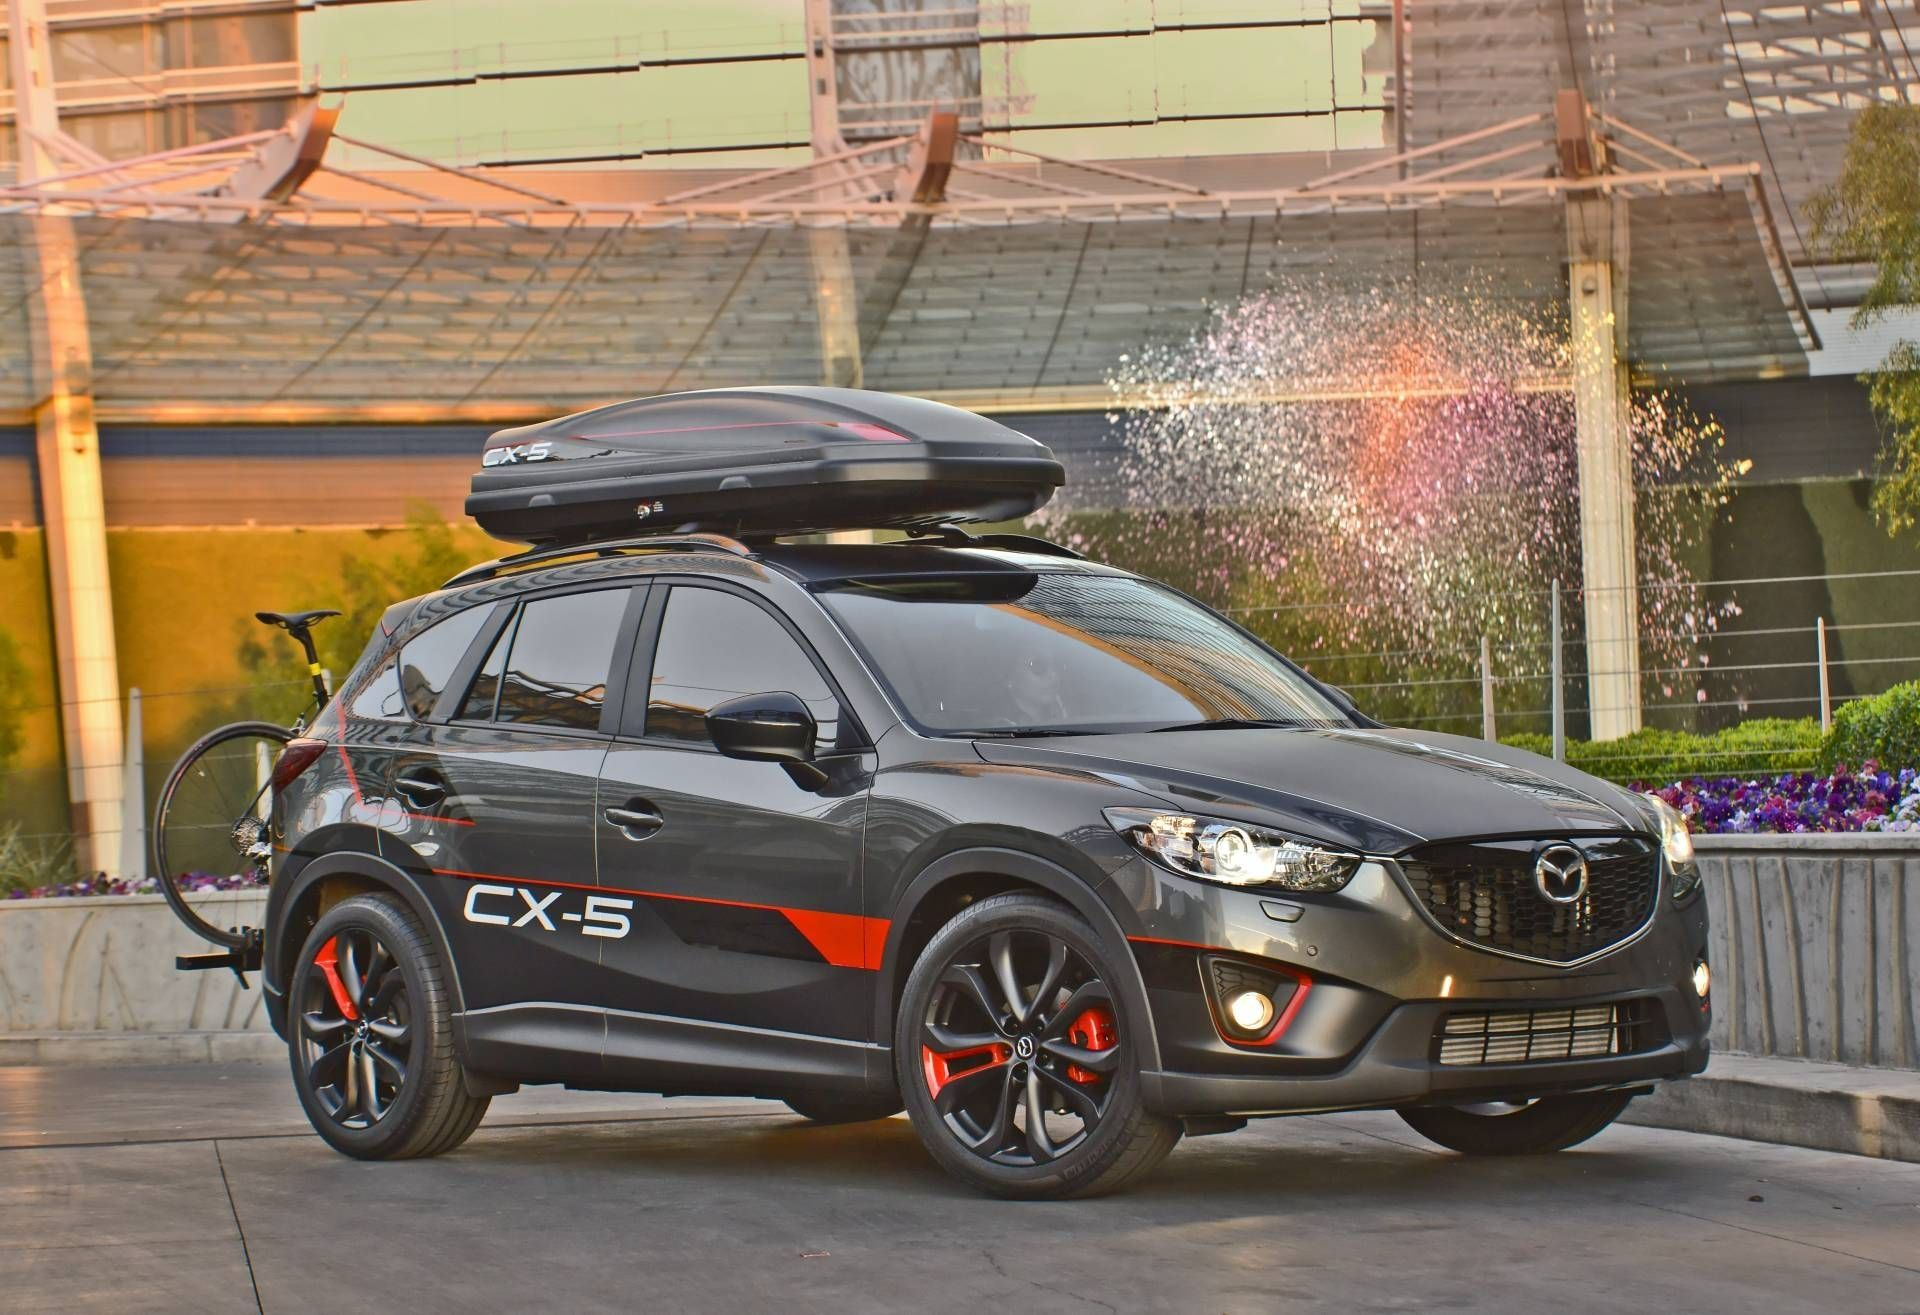 Best 2020 Mazda Cx 5 Spesification Cars Review 2019 With Images Mazda Cars Mazda Mazda Cx5